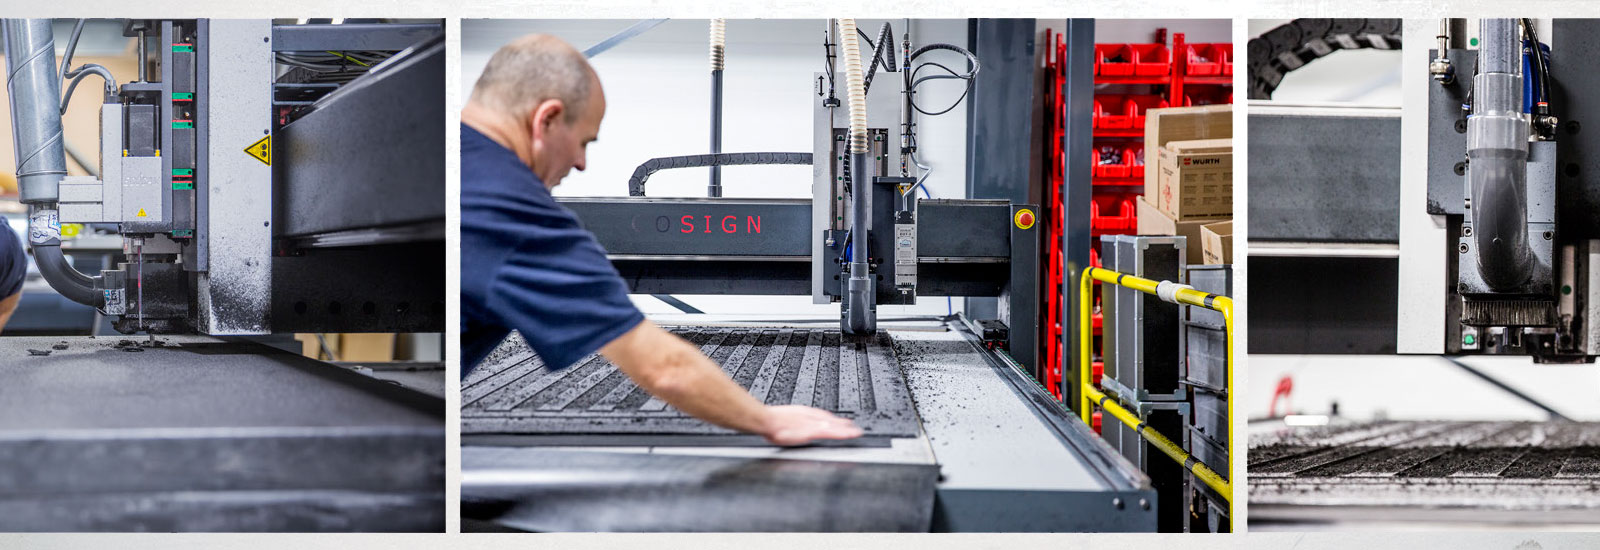 We manufacture and design Flightcases and all kinds of foam devices<